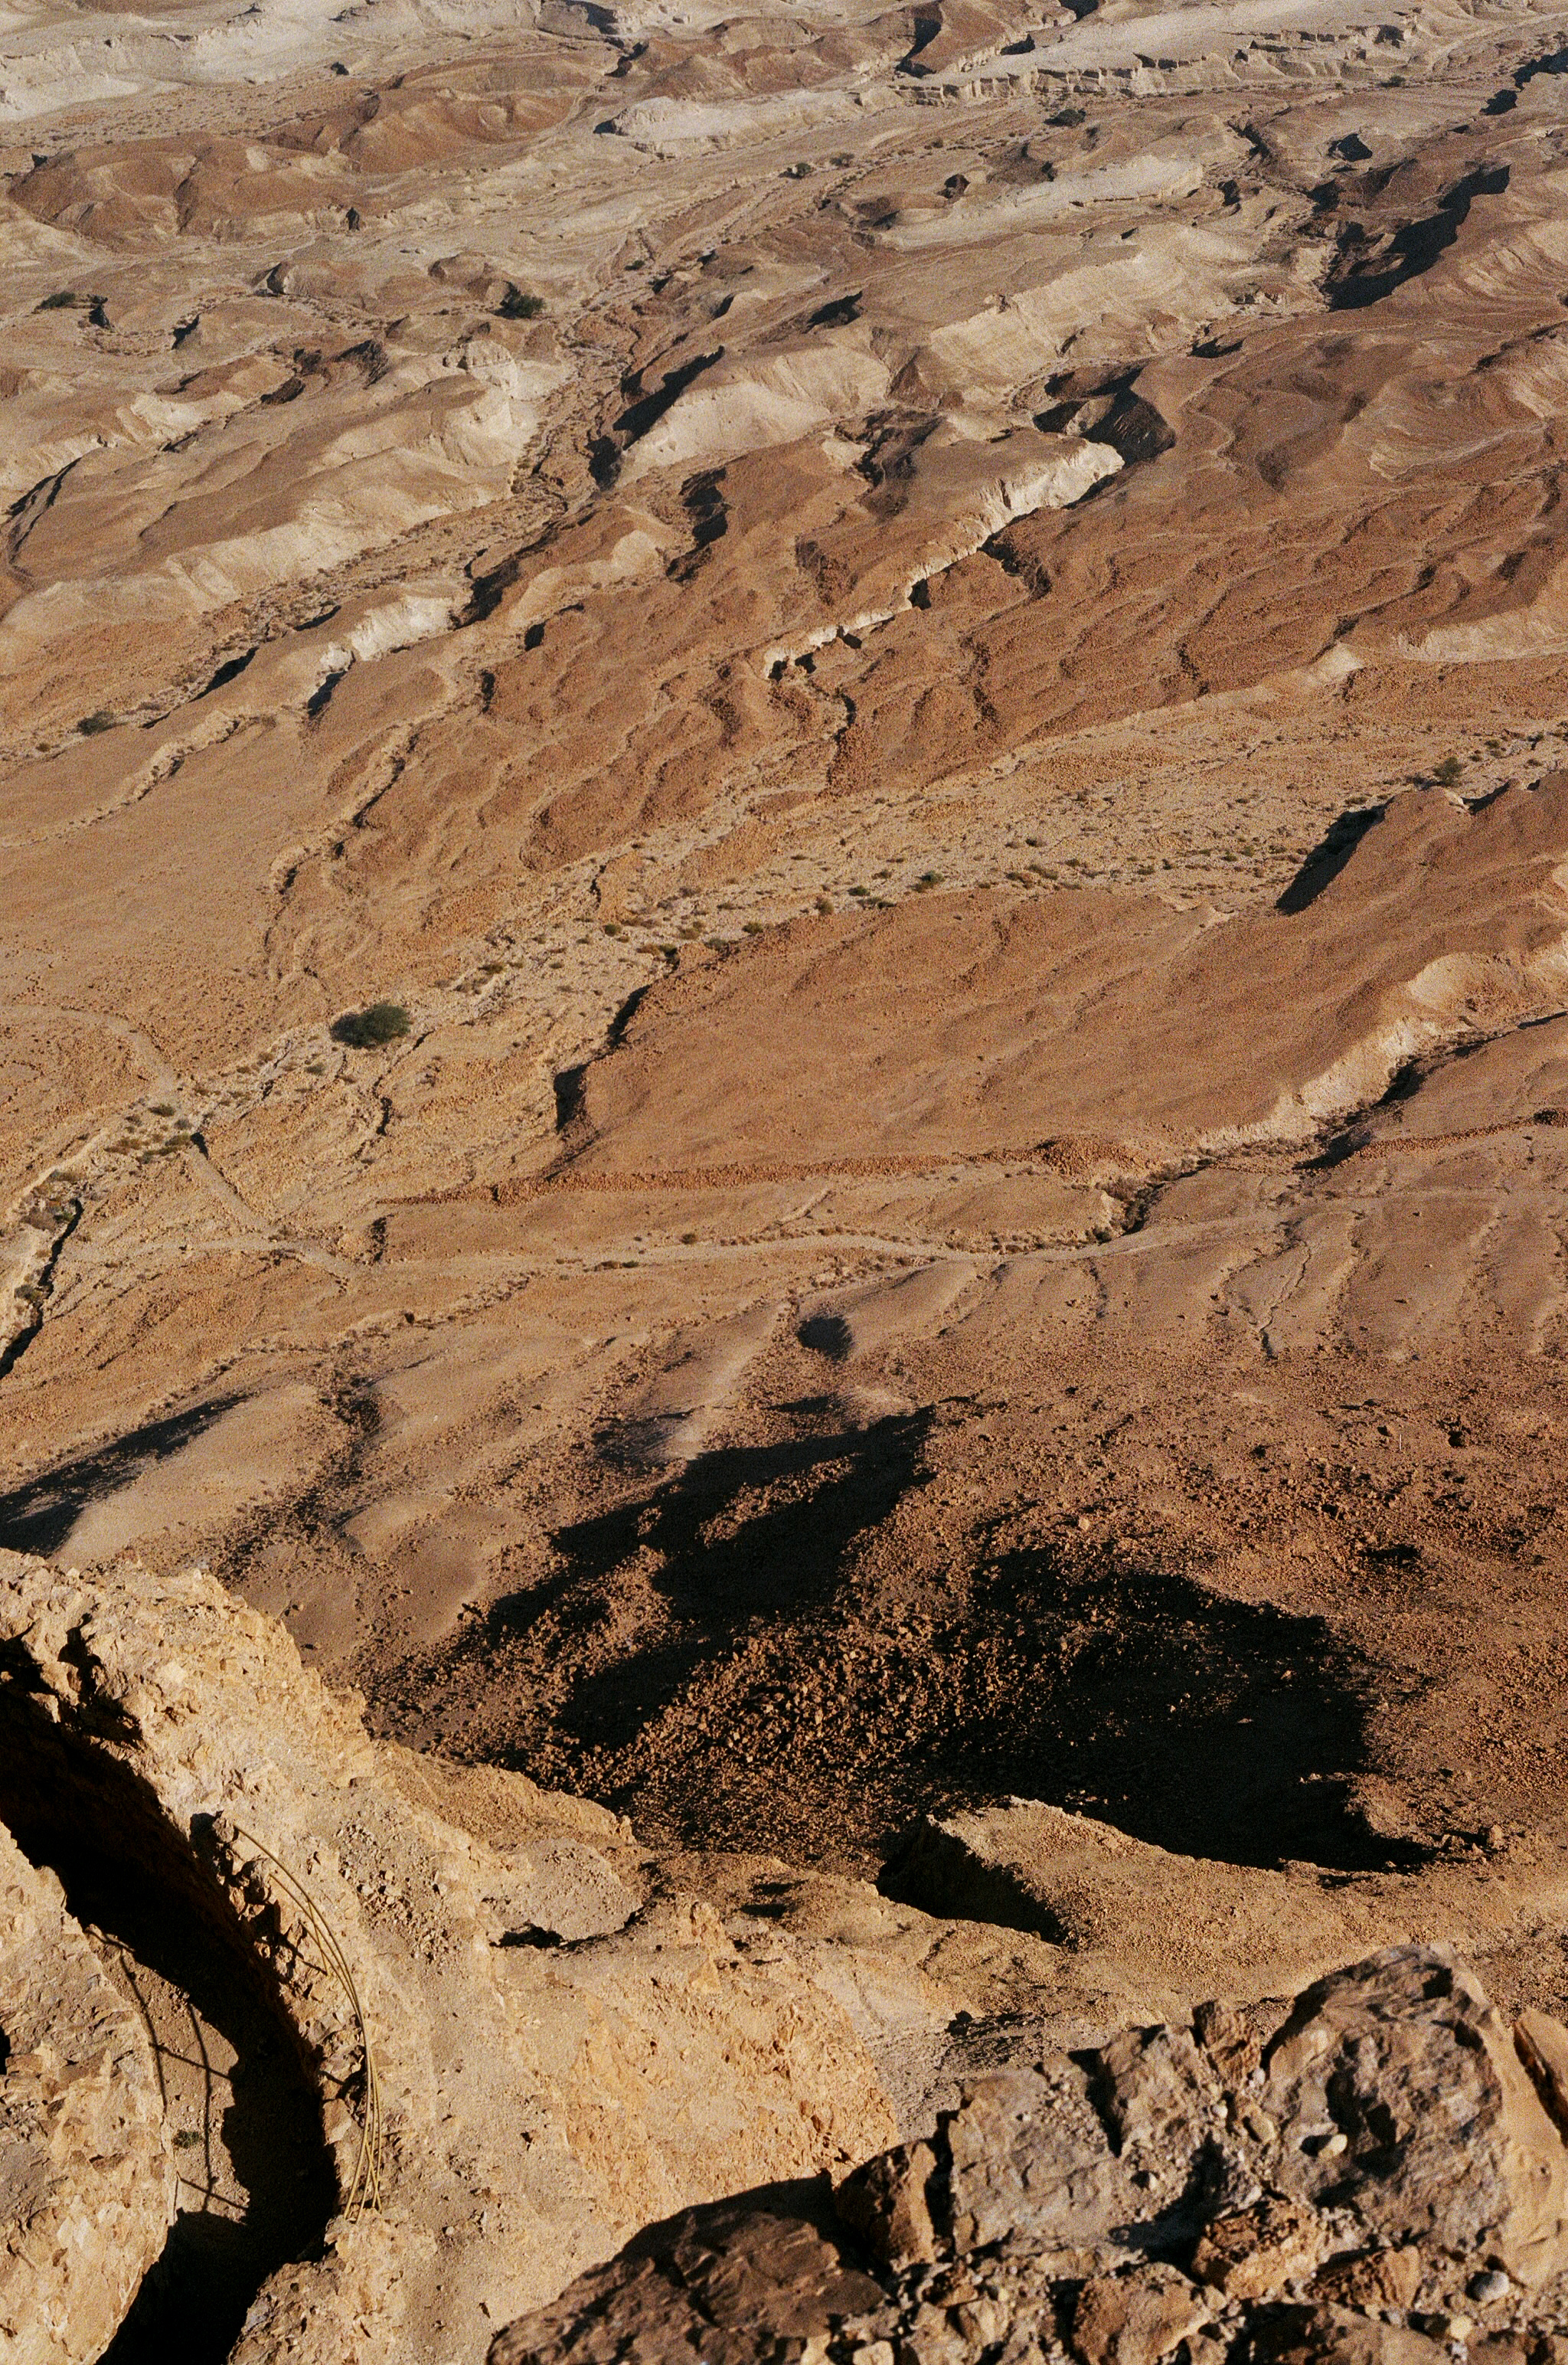 """The view from Masada (מצדה metsada """"fortress"""") is an ancient fortification in the Southern District of Israel situated on top of an isolated rock plateau, akin to a mesa."""